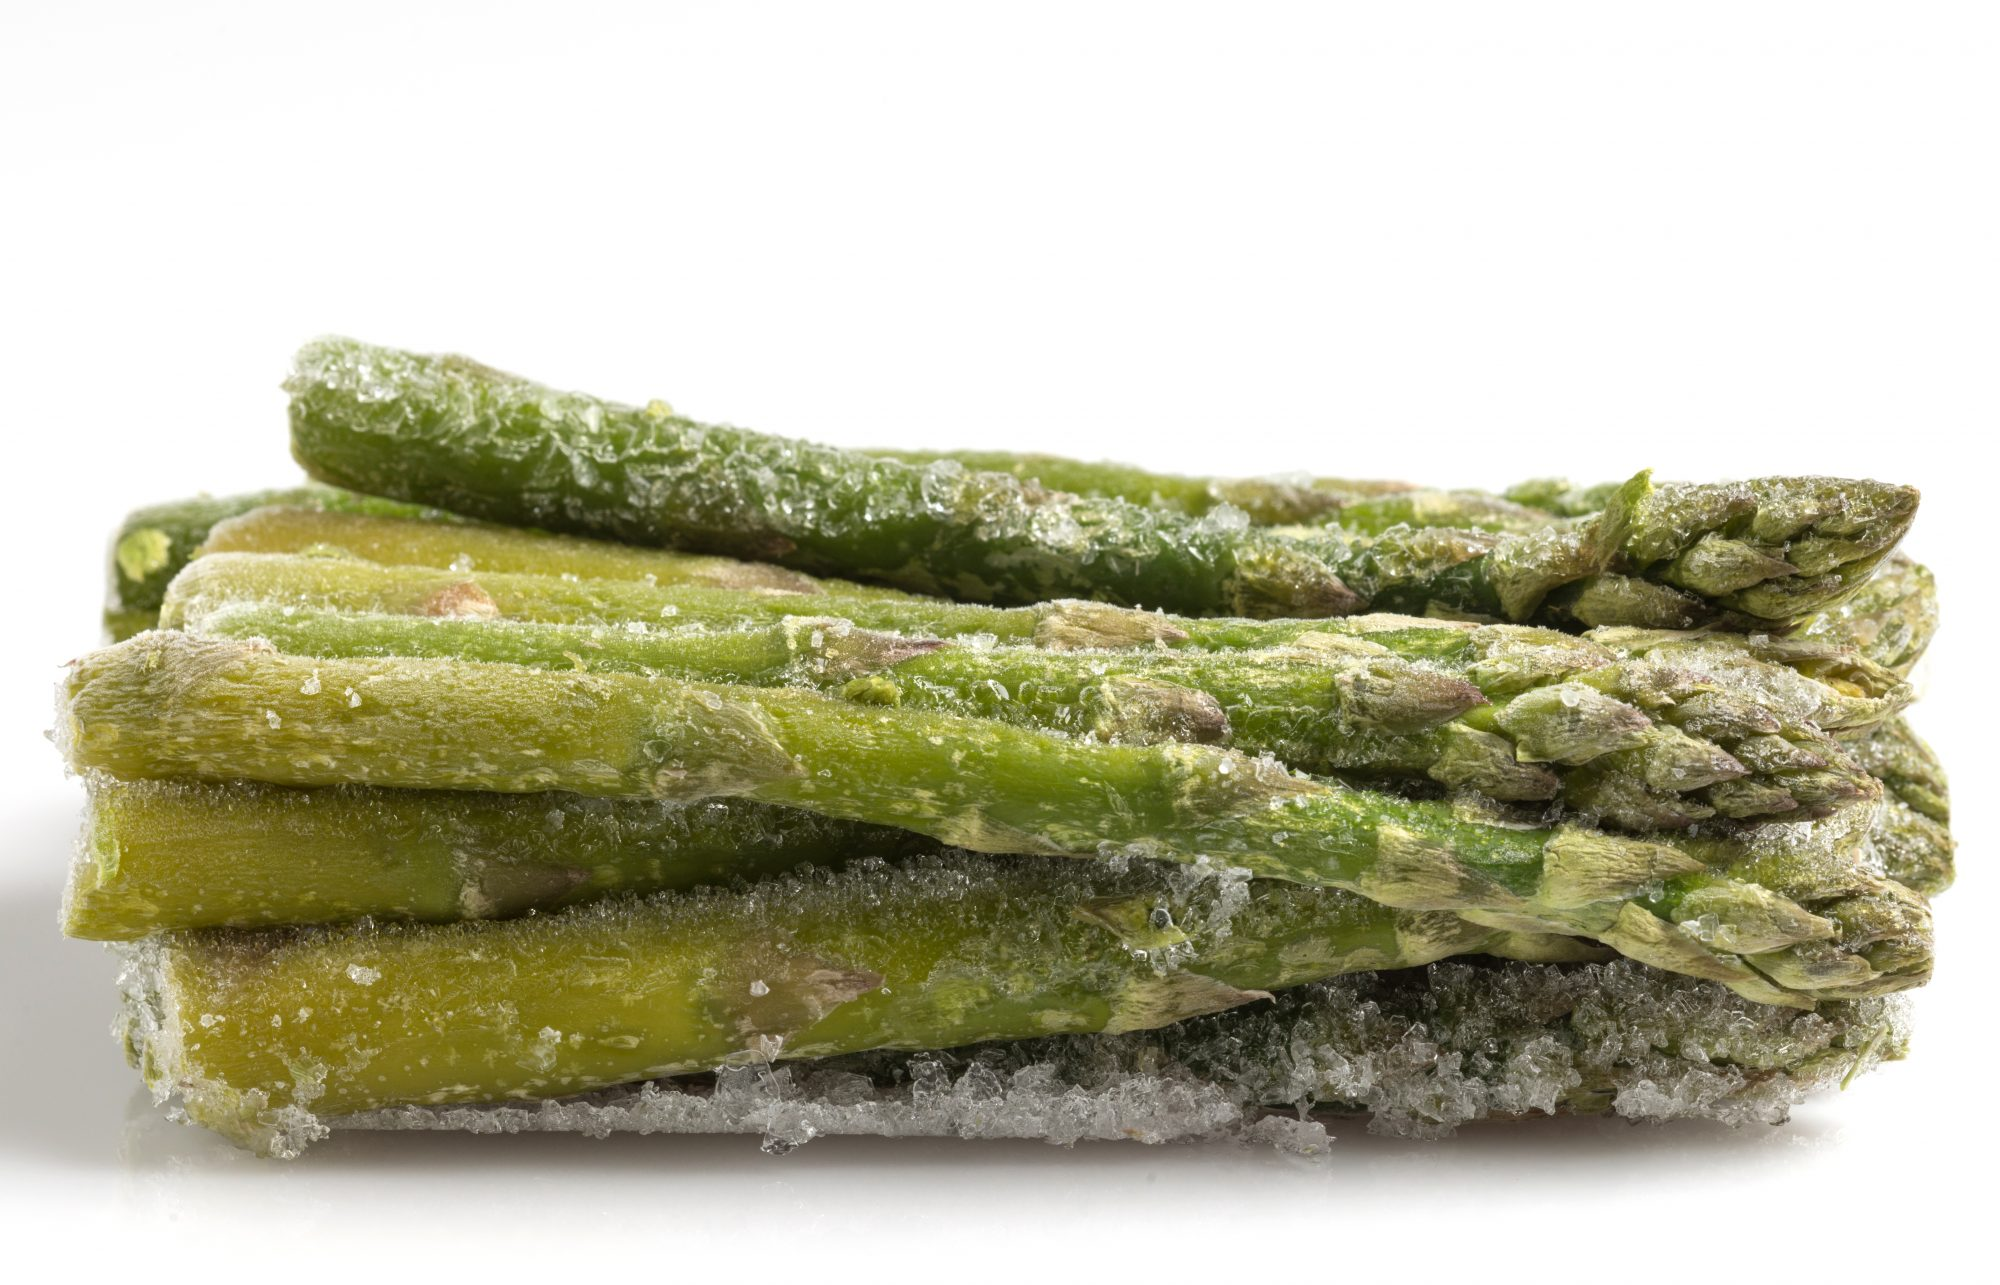 Frozen Asparagus Getty 4/22/20